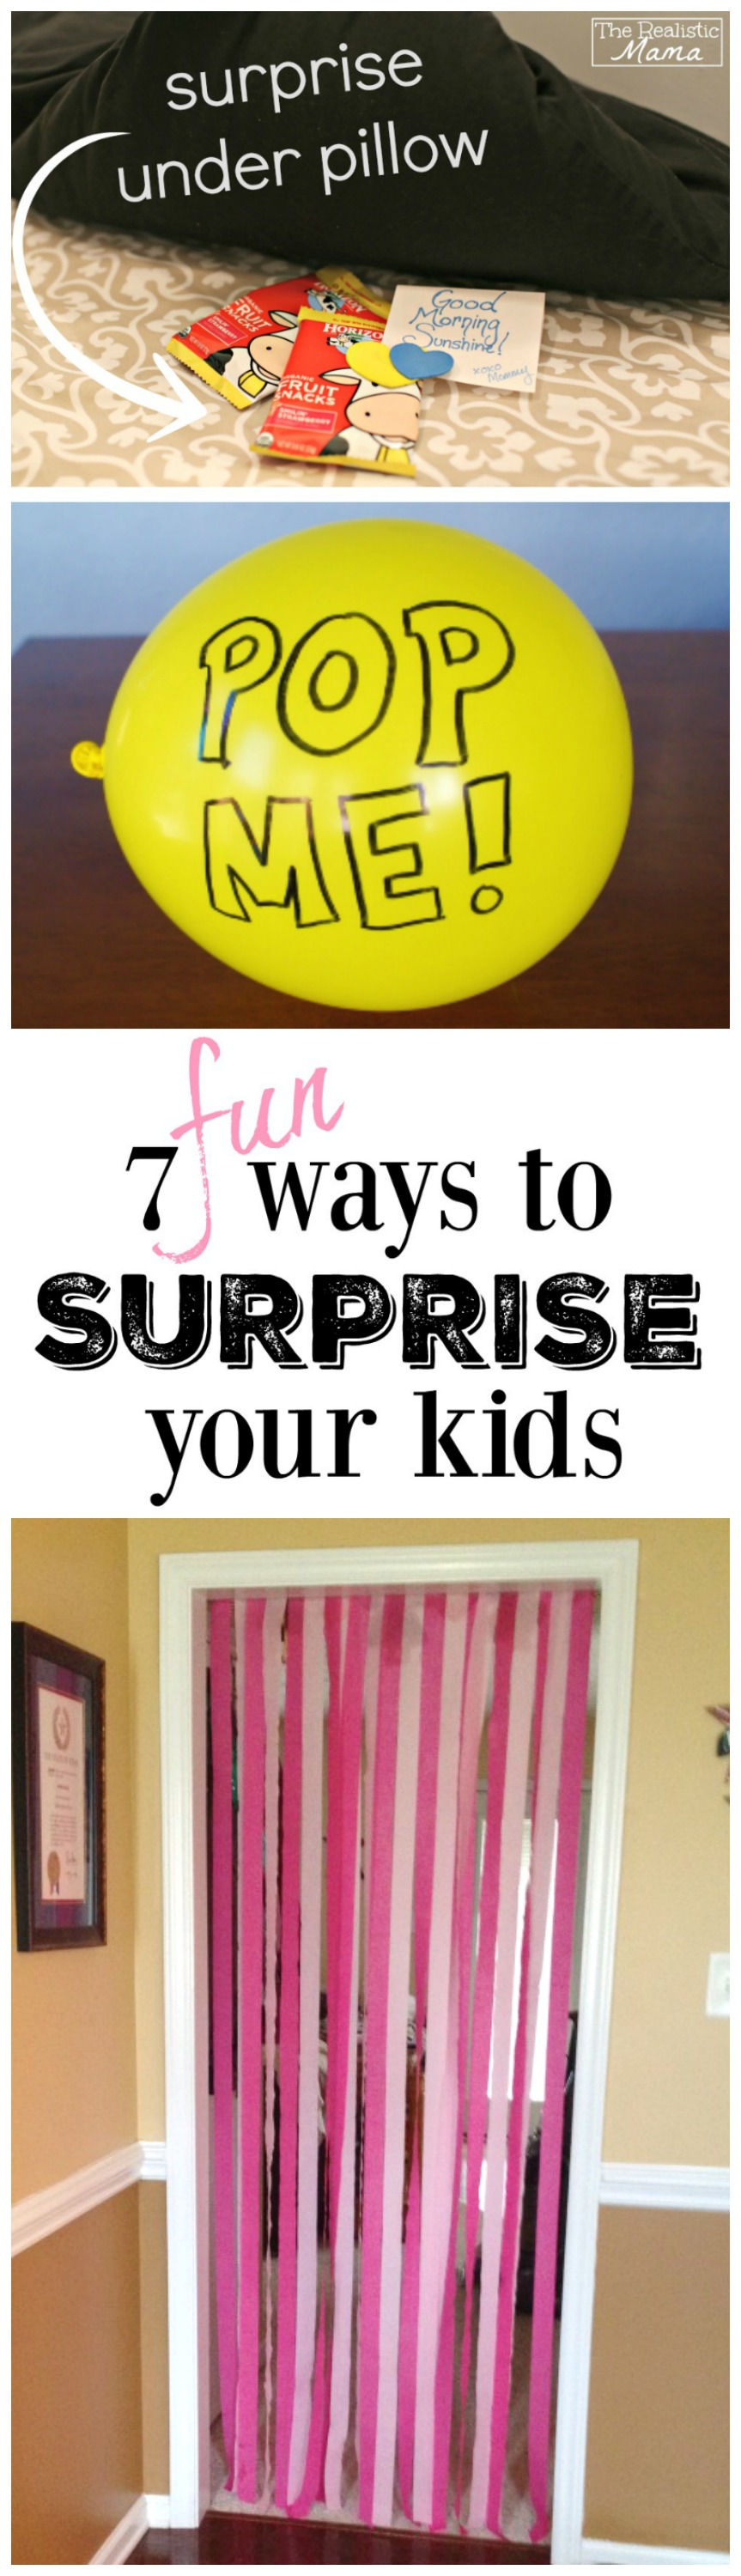 How to Surprise Your Kids with a Trip to Walt Disney World recommendations